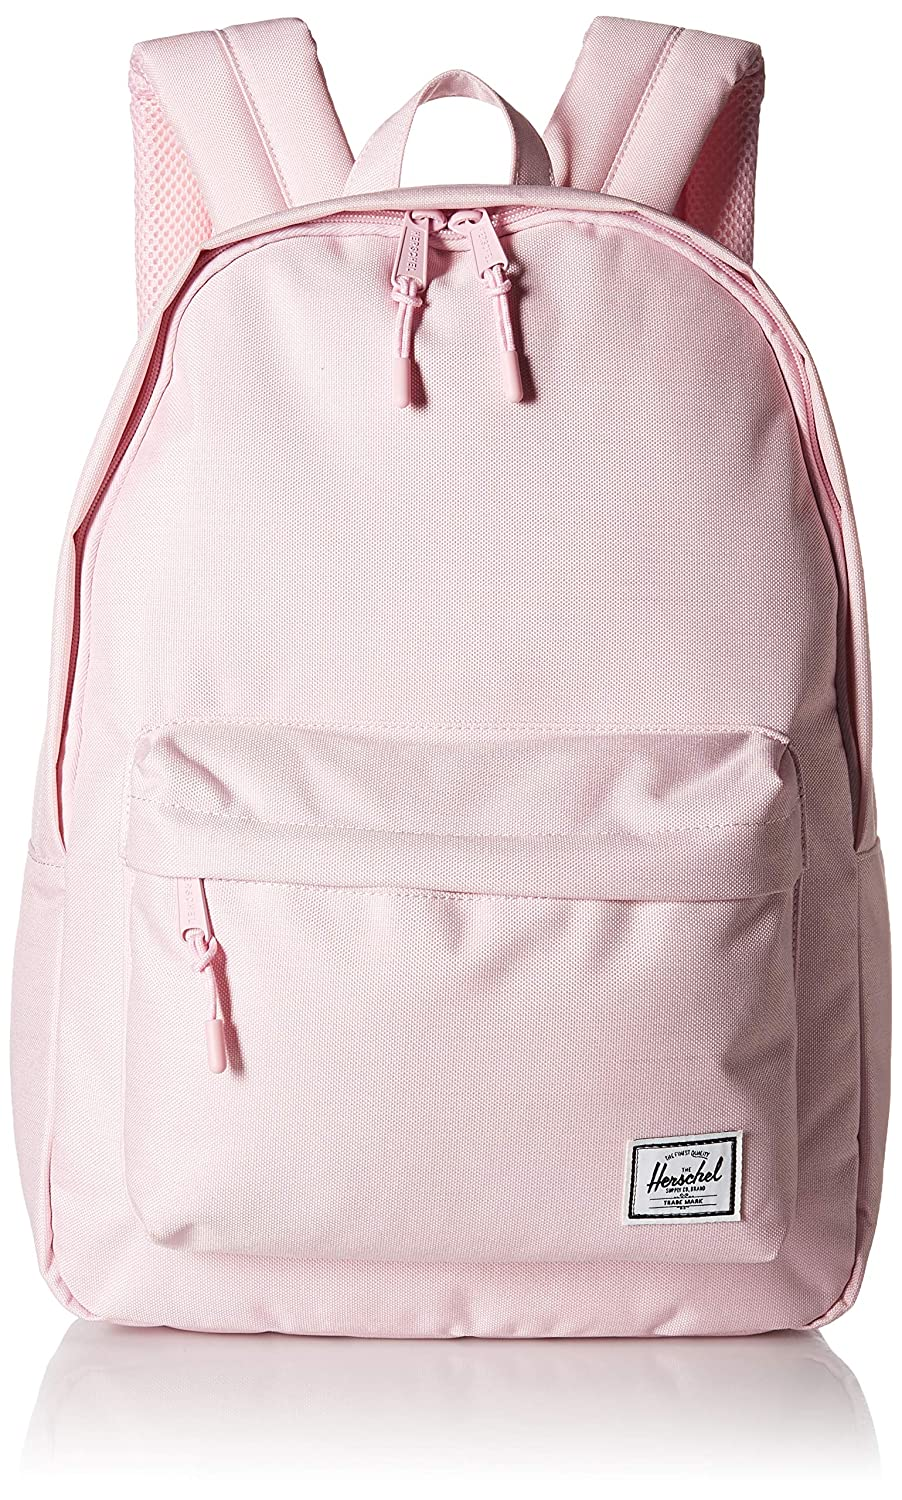 Herschel Supply Co. バックパック  Pink Lady Crosshatch B07DYTZZG1